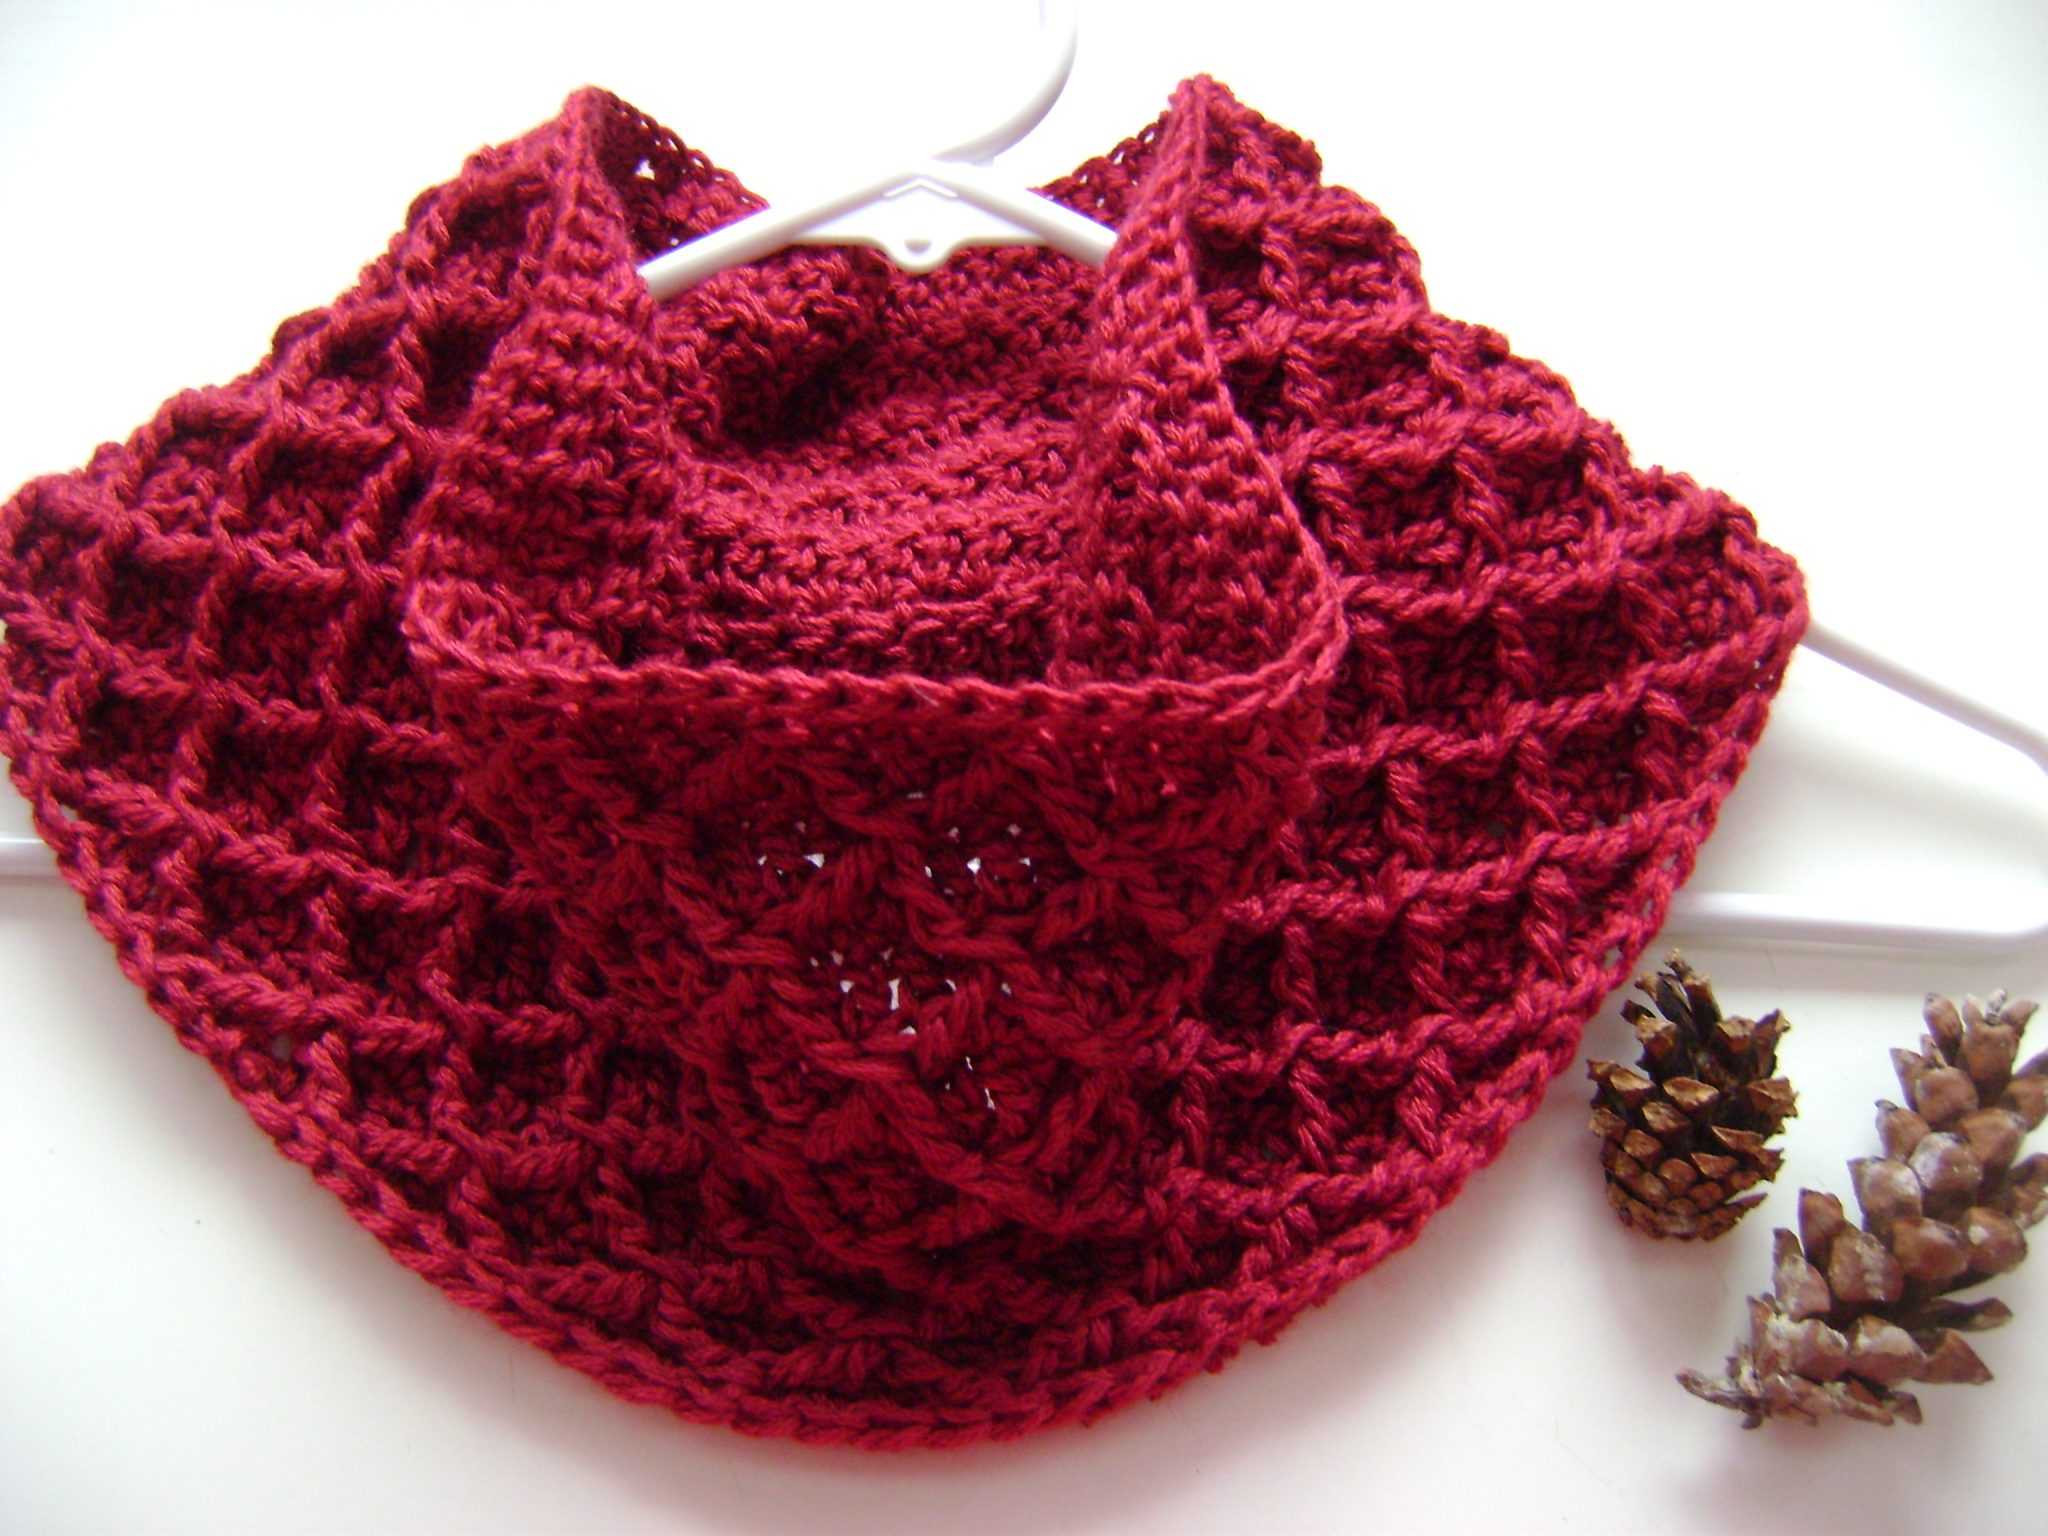 All Crochet Free Patterns : free crochet cowl pattern diamonds cables winter scarf